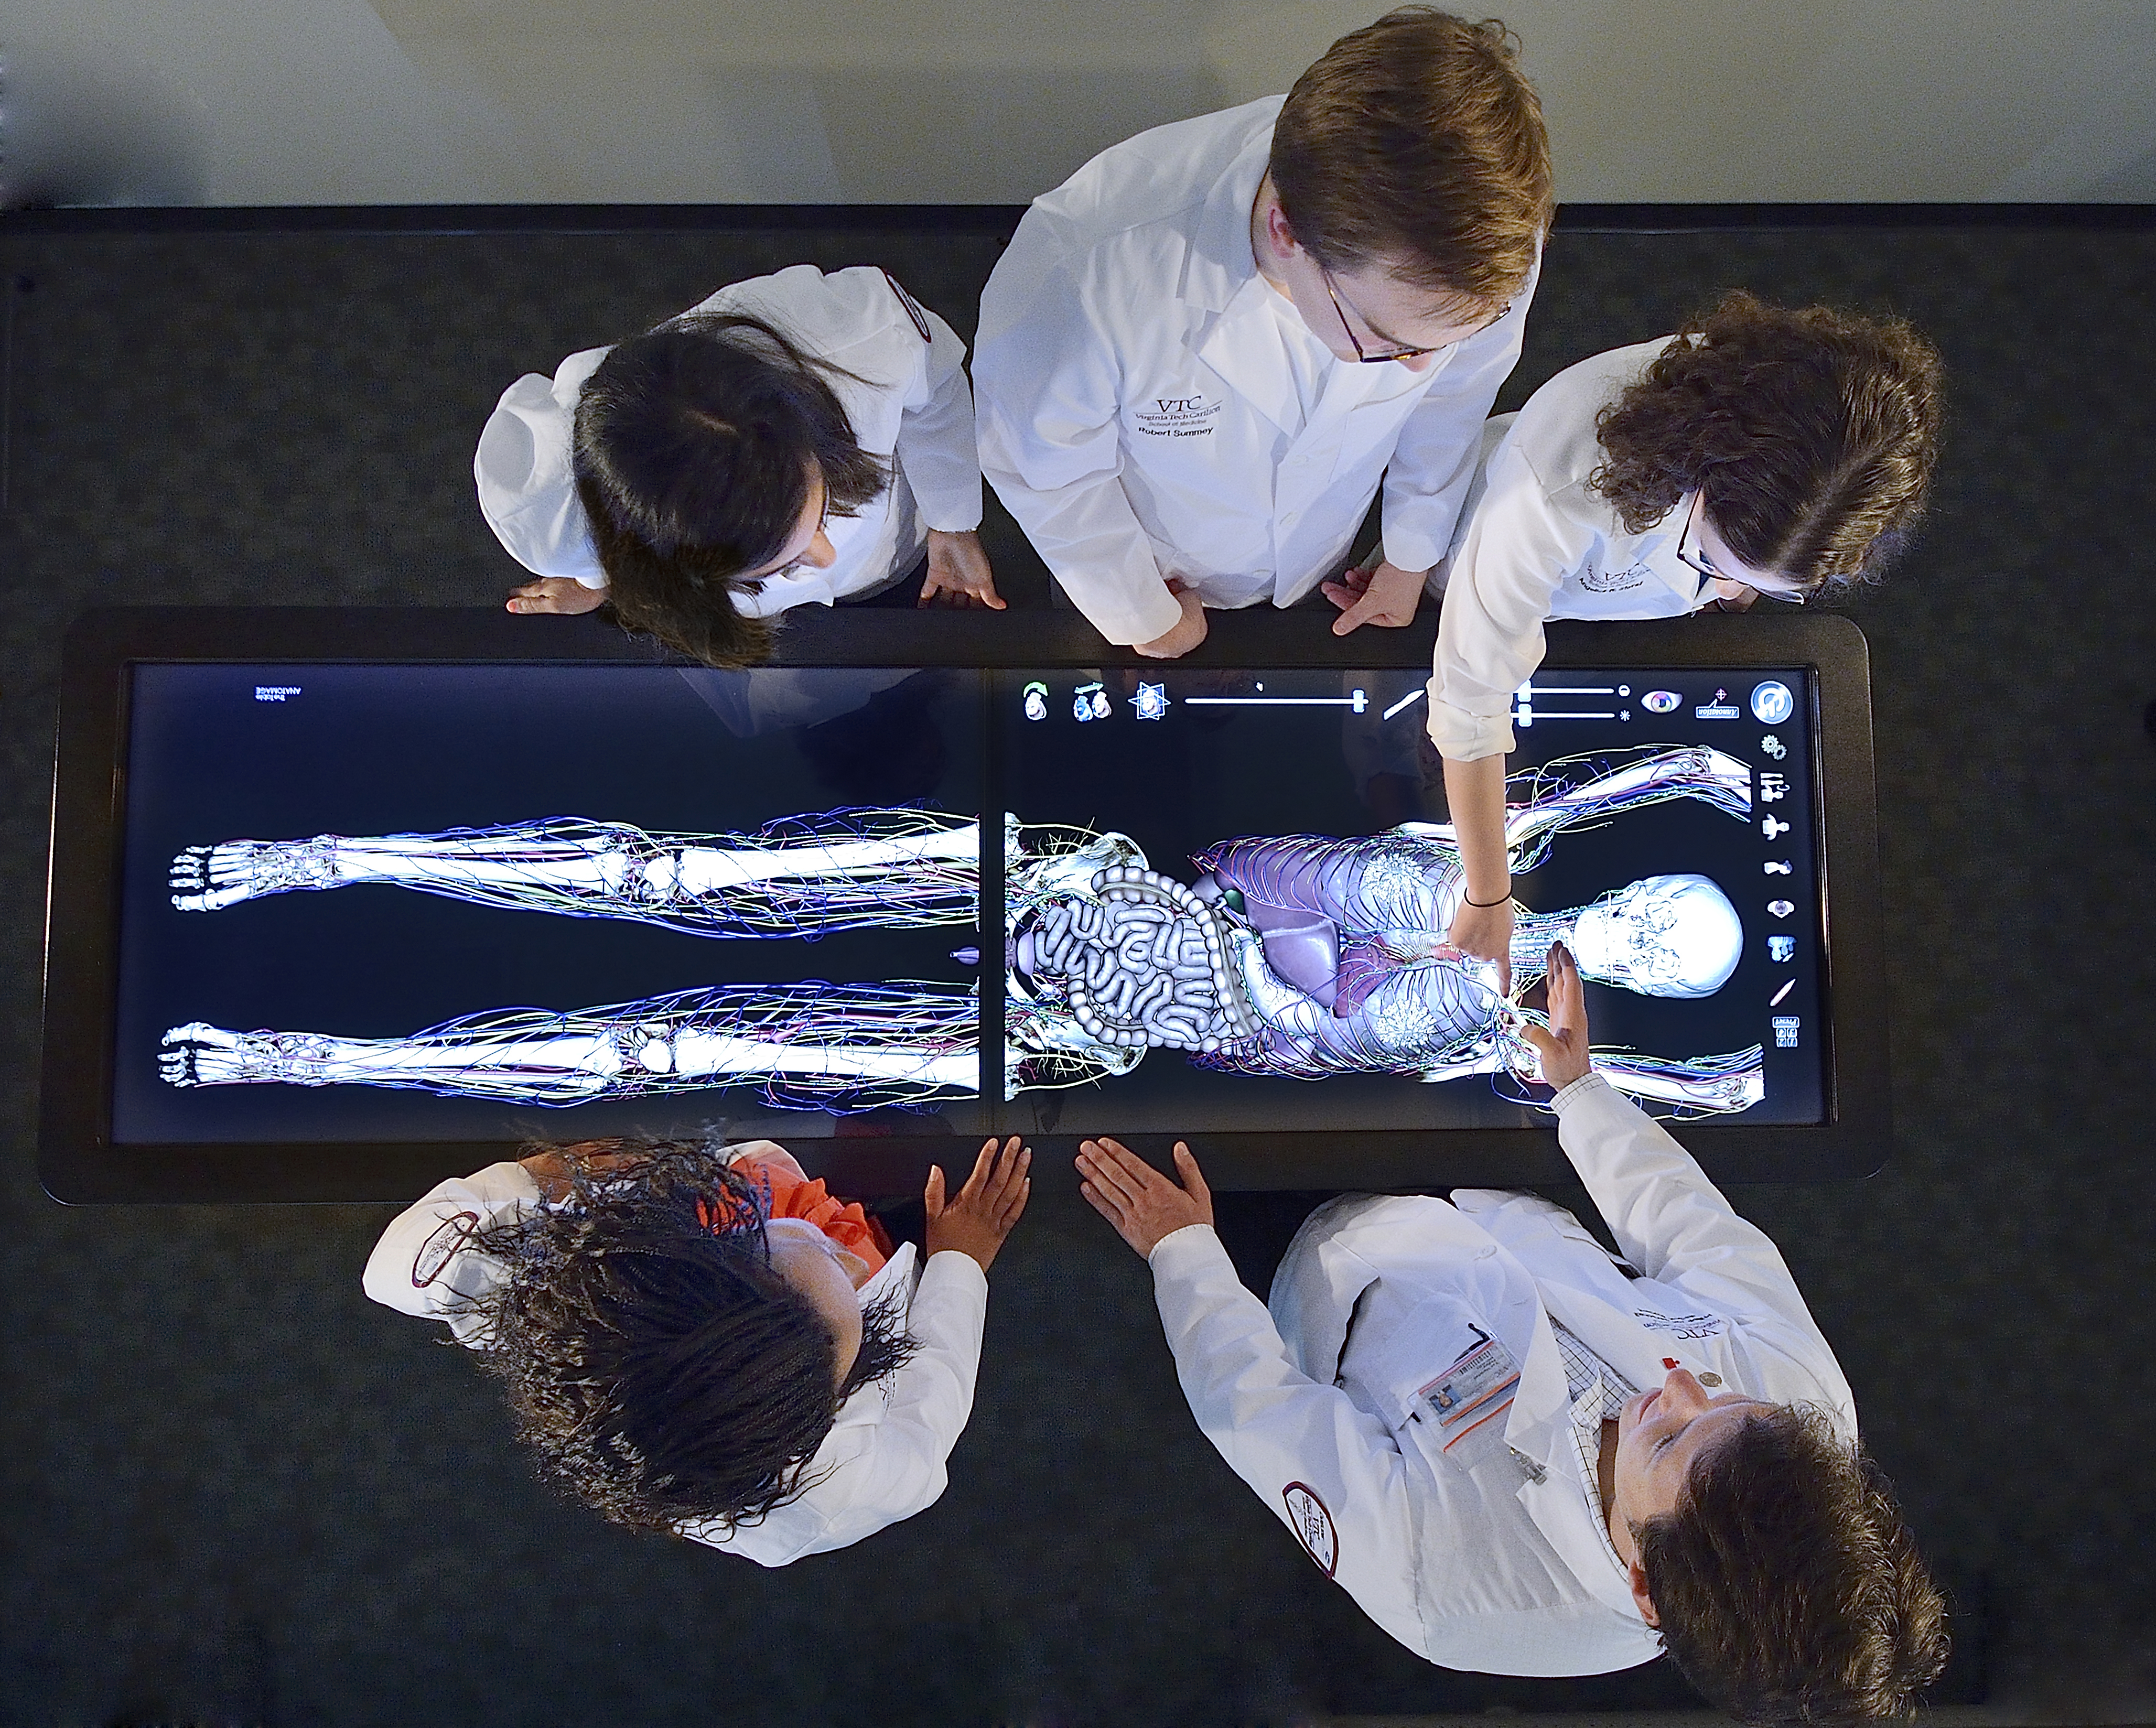 At The Touch Of A Finger Virtual Patient Helps Students Learn